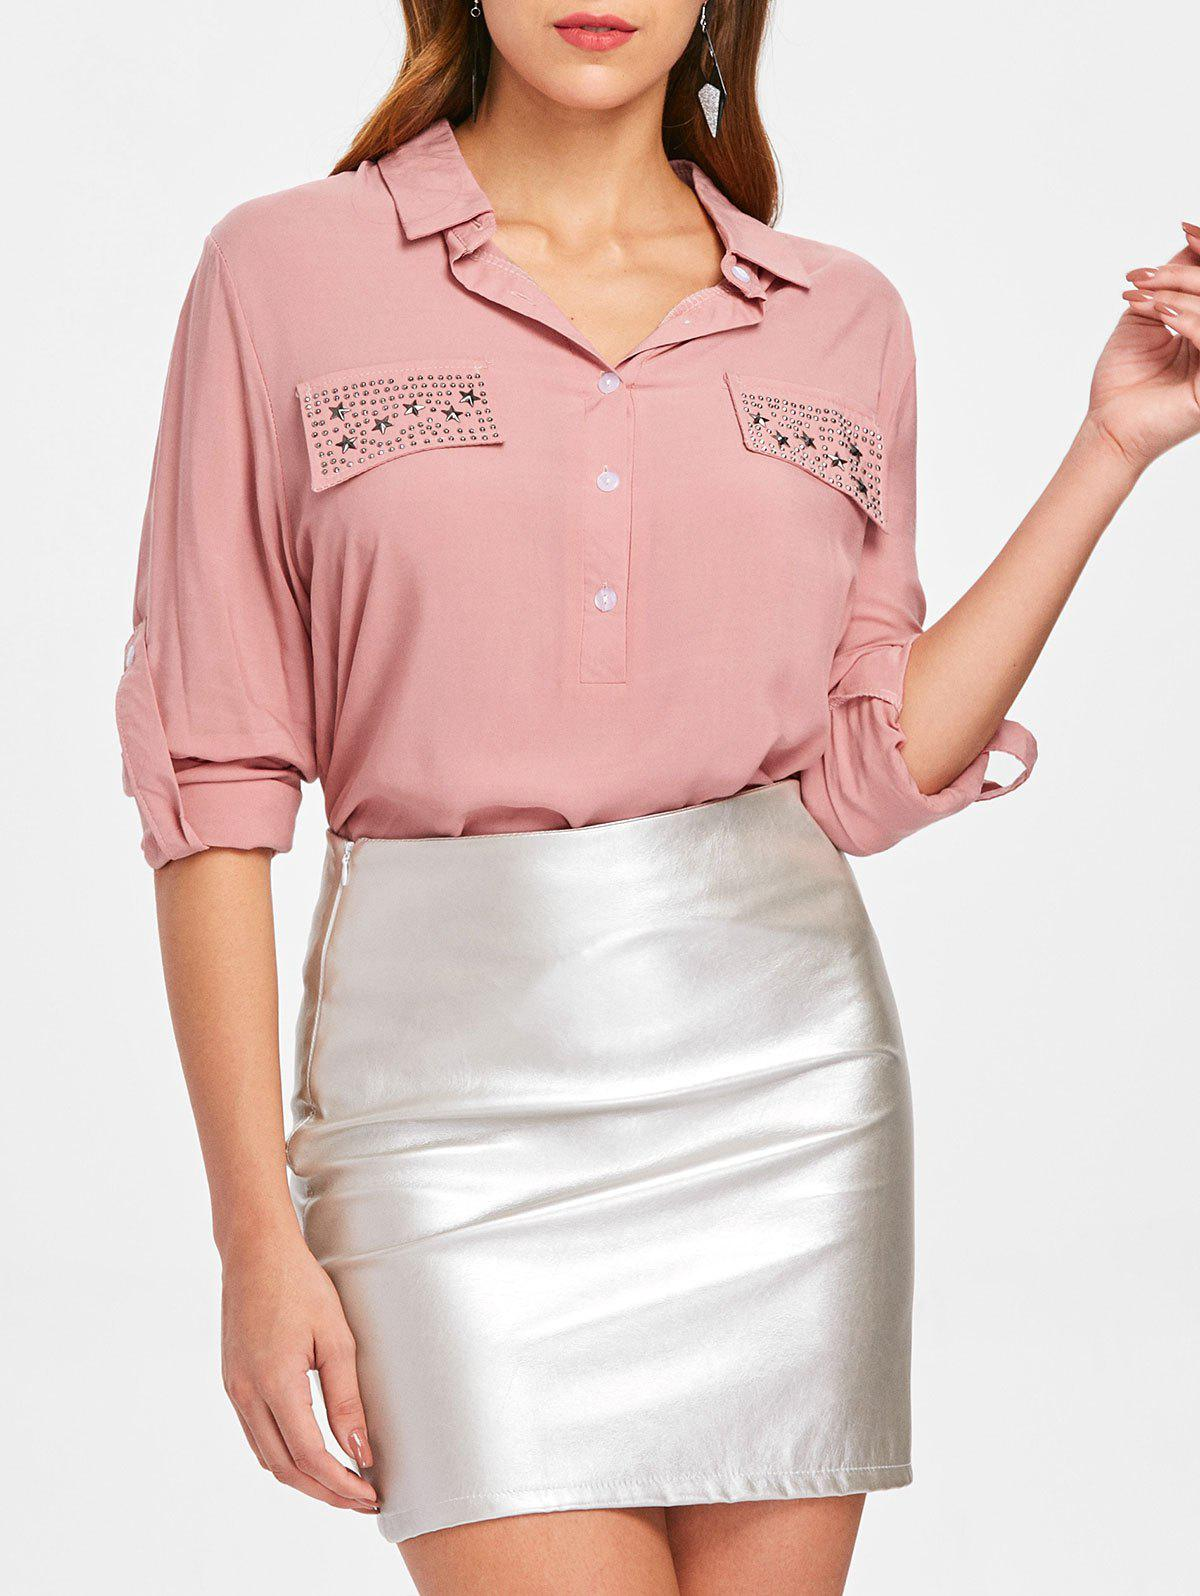 Outfit Button Insert Rhinestone Pockets Shirt